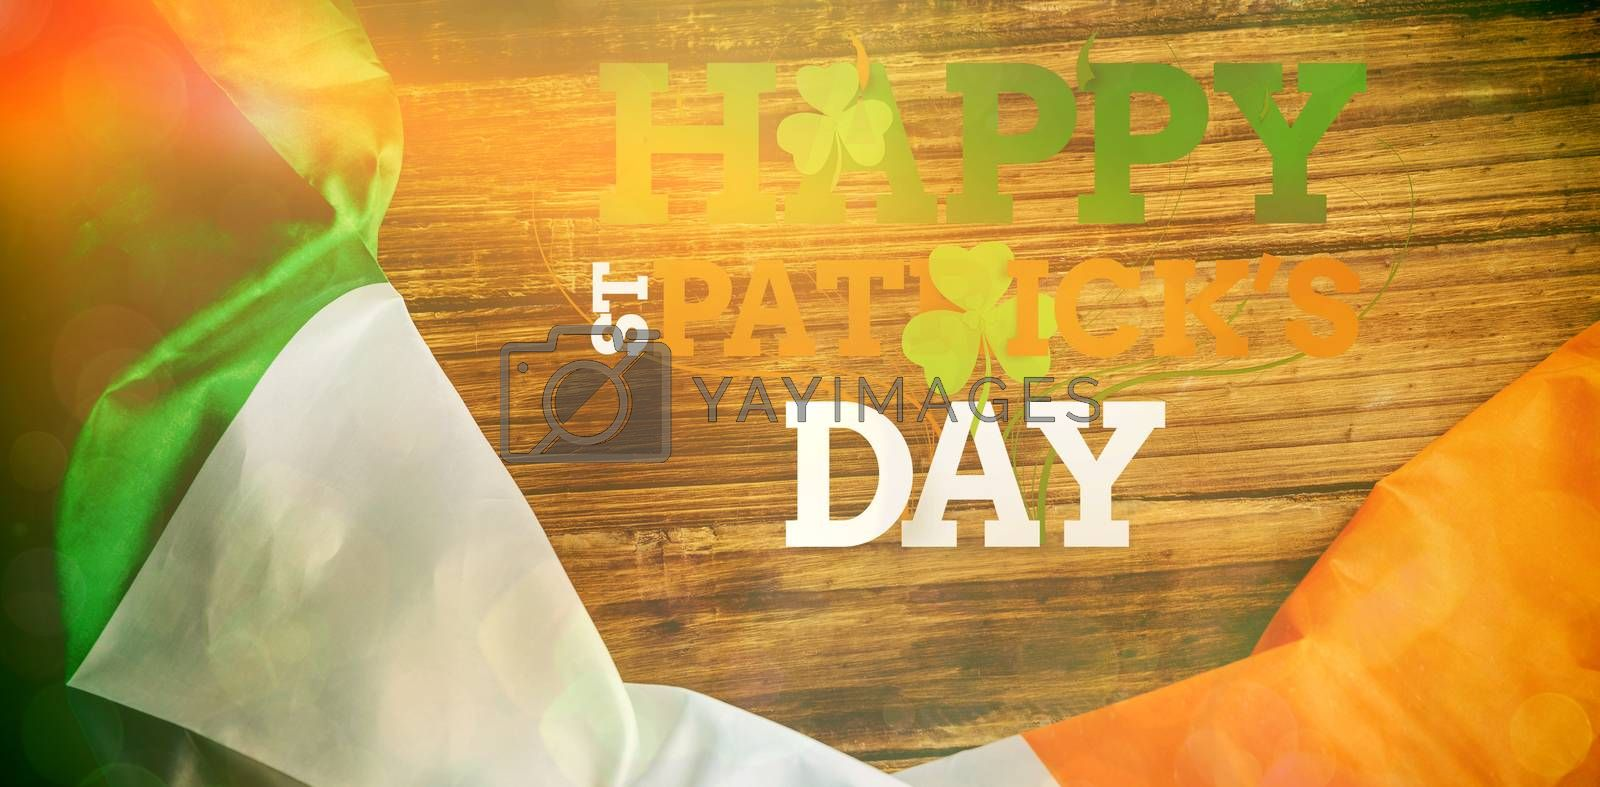 St patricks day greeting on wooden background